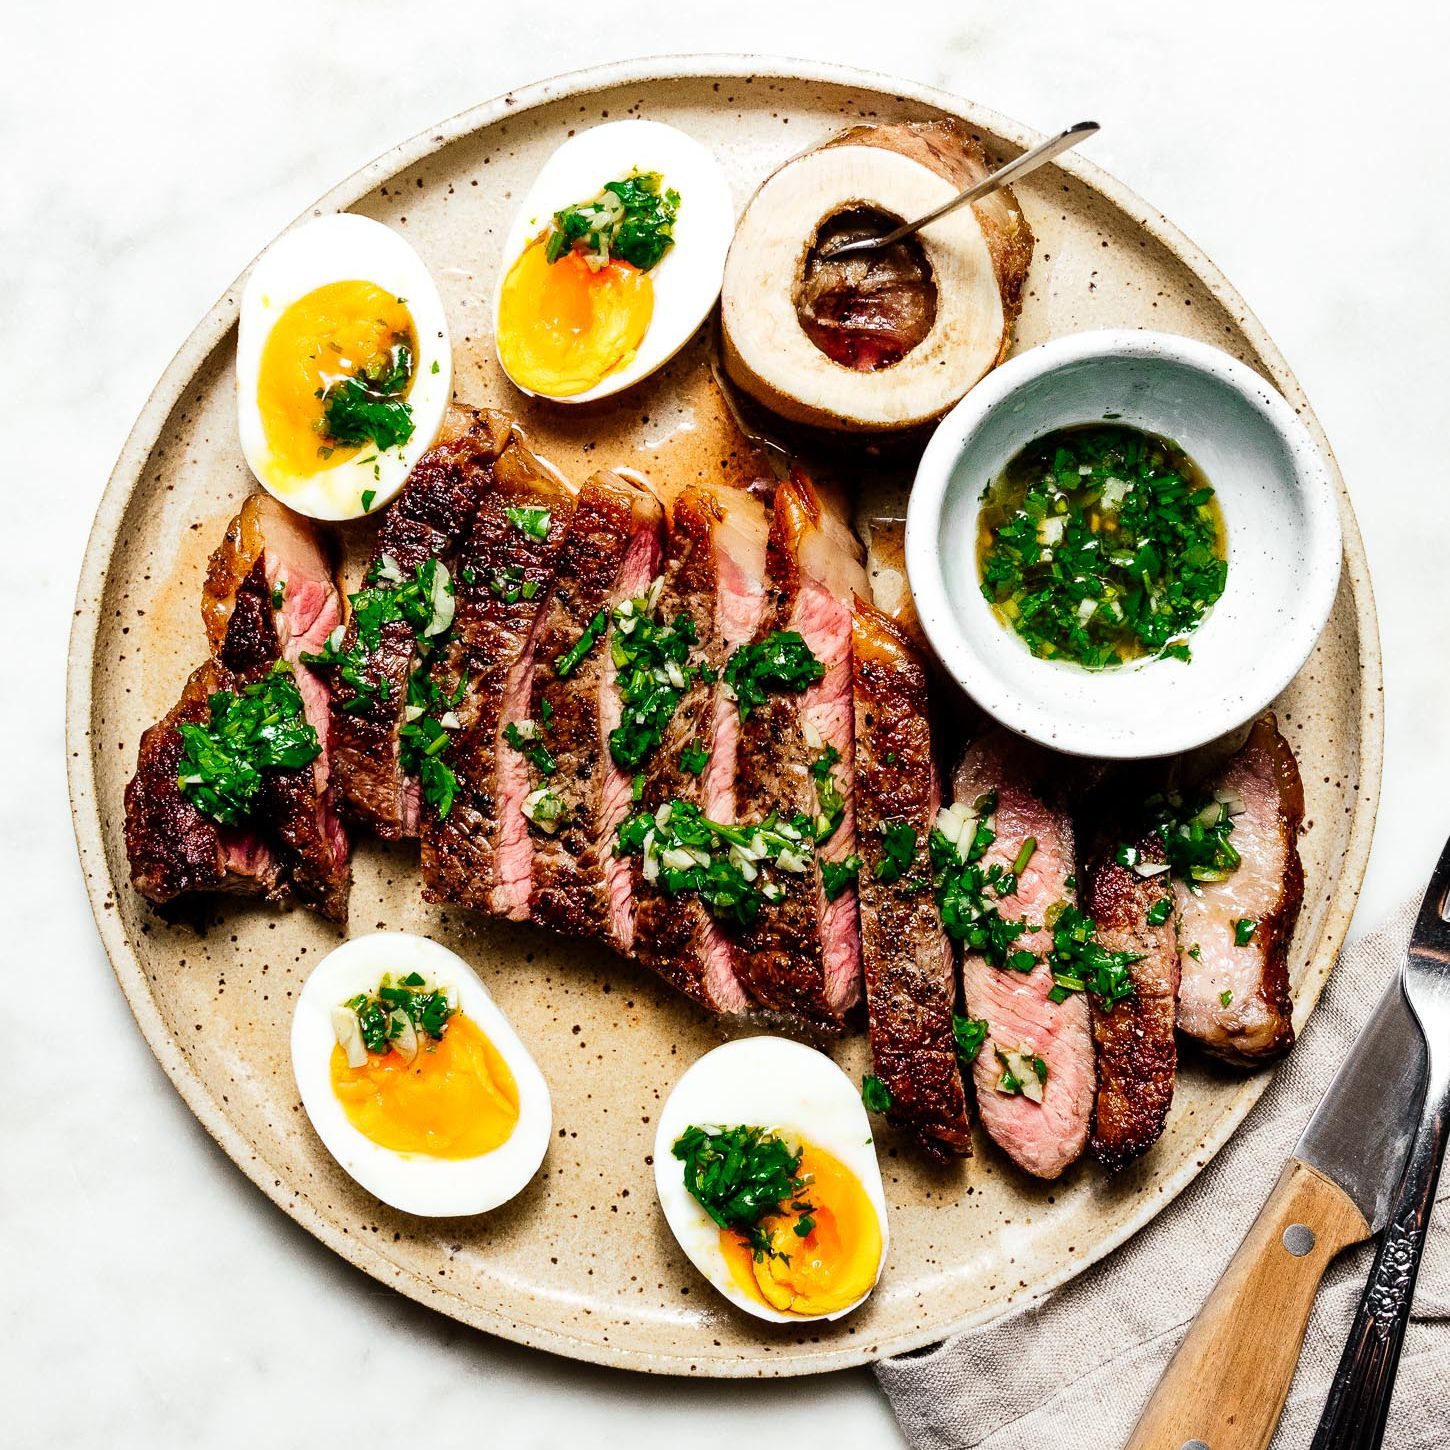 How to Make Chimichurri Sauce That Will Wow at Your Next Dinner Party